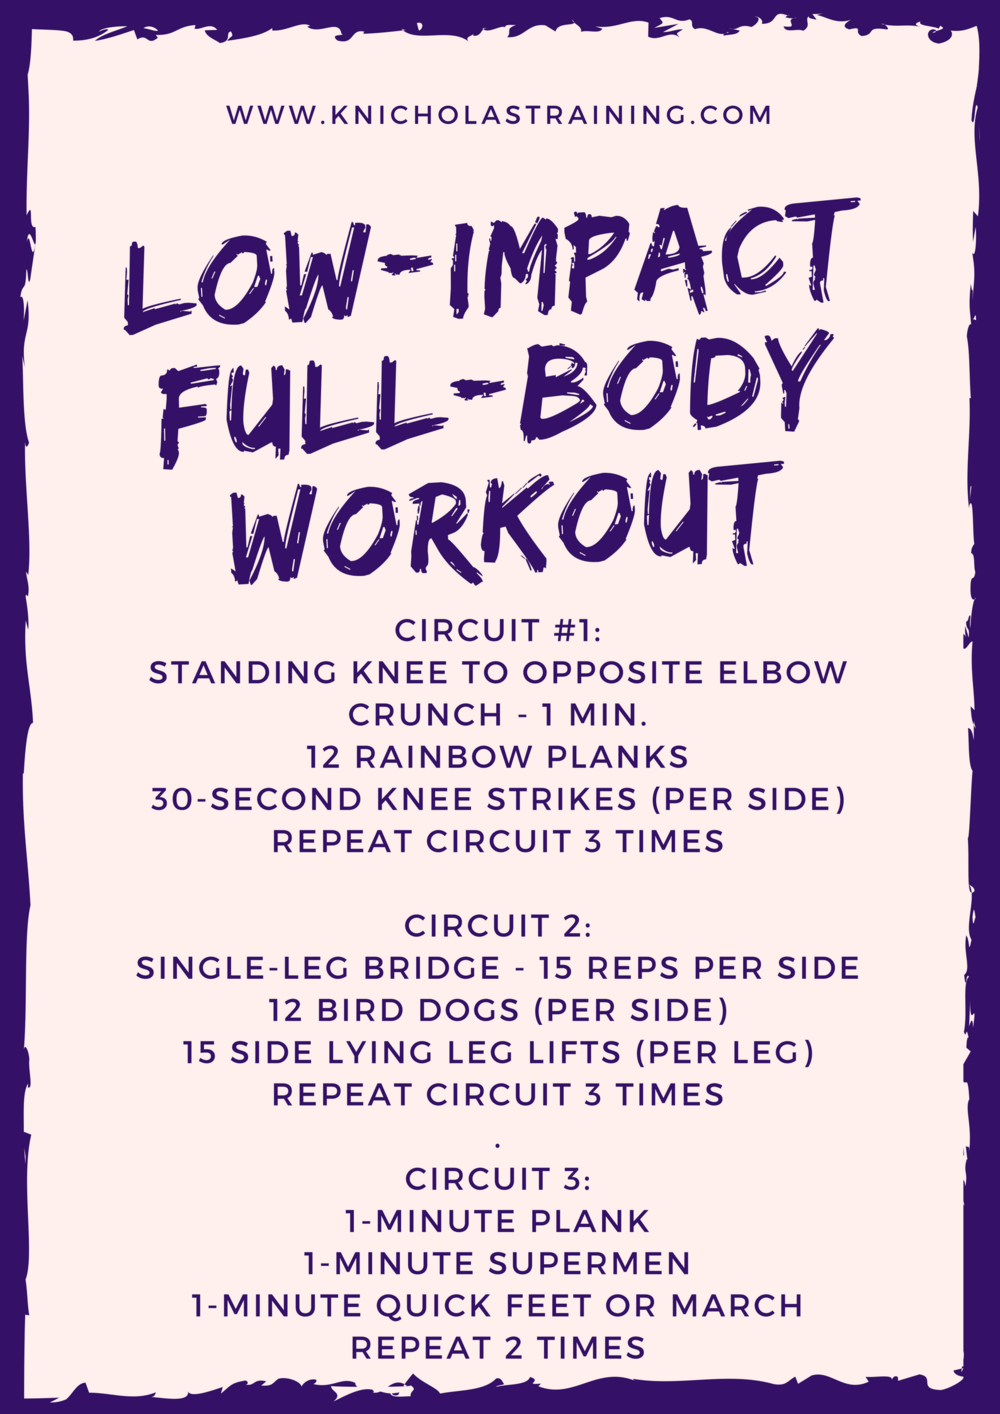 Low-Impact, Full-Body Workout